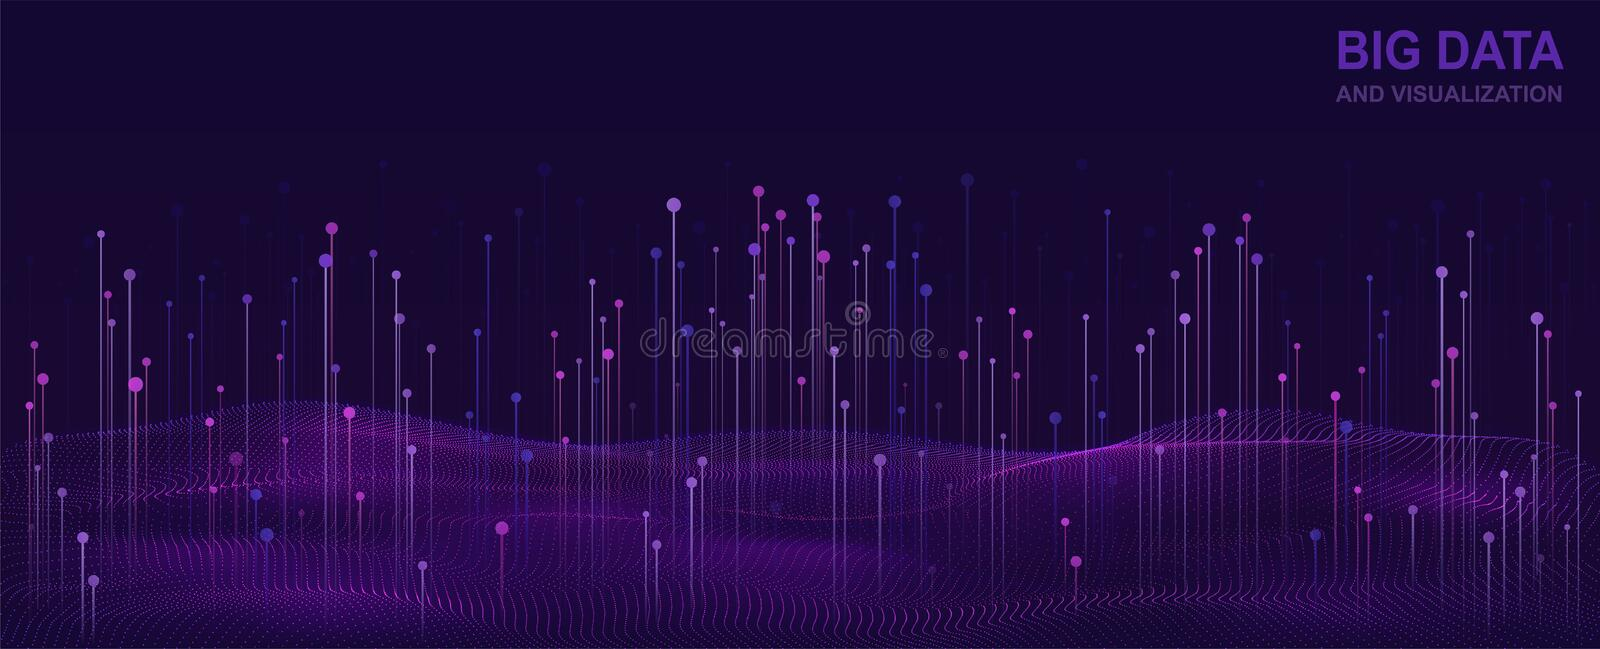 Big data visualization. Futuristic design of data flow. Abstract digital background with flowing particles. royalty free illustration